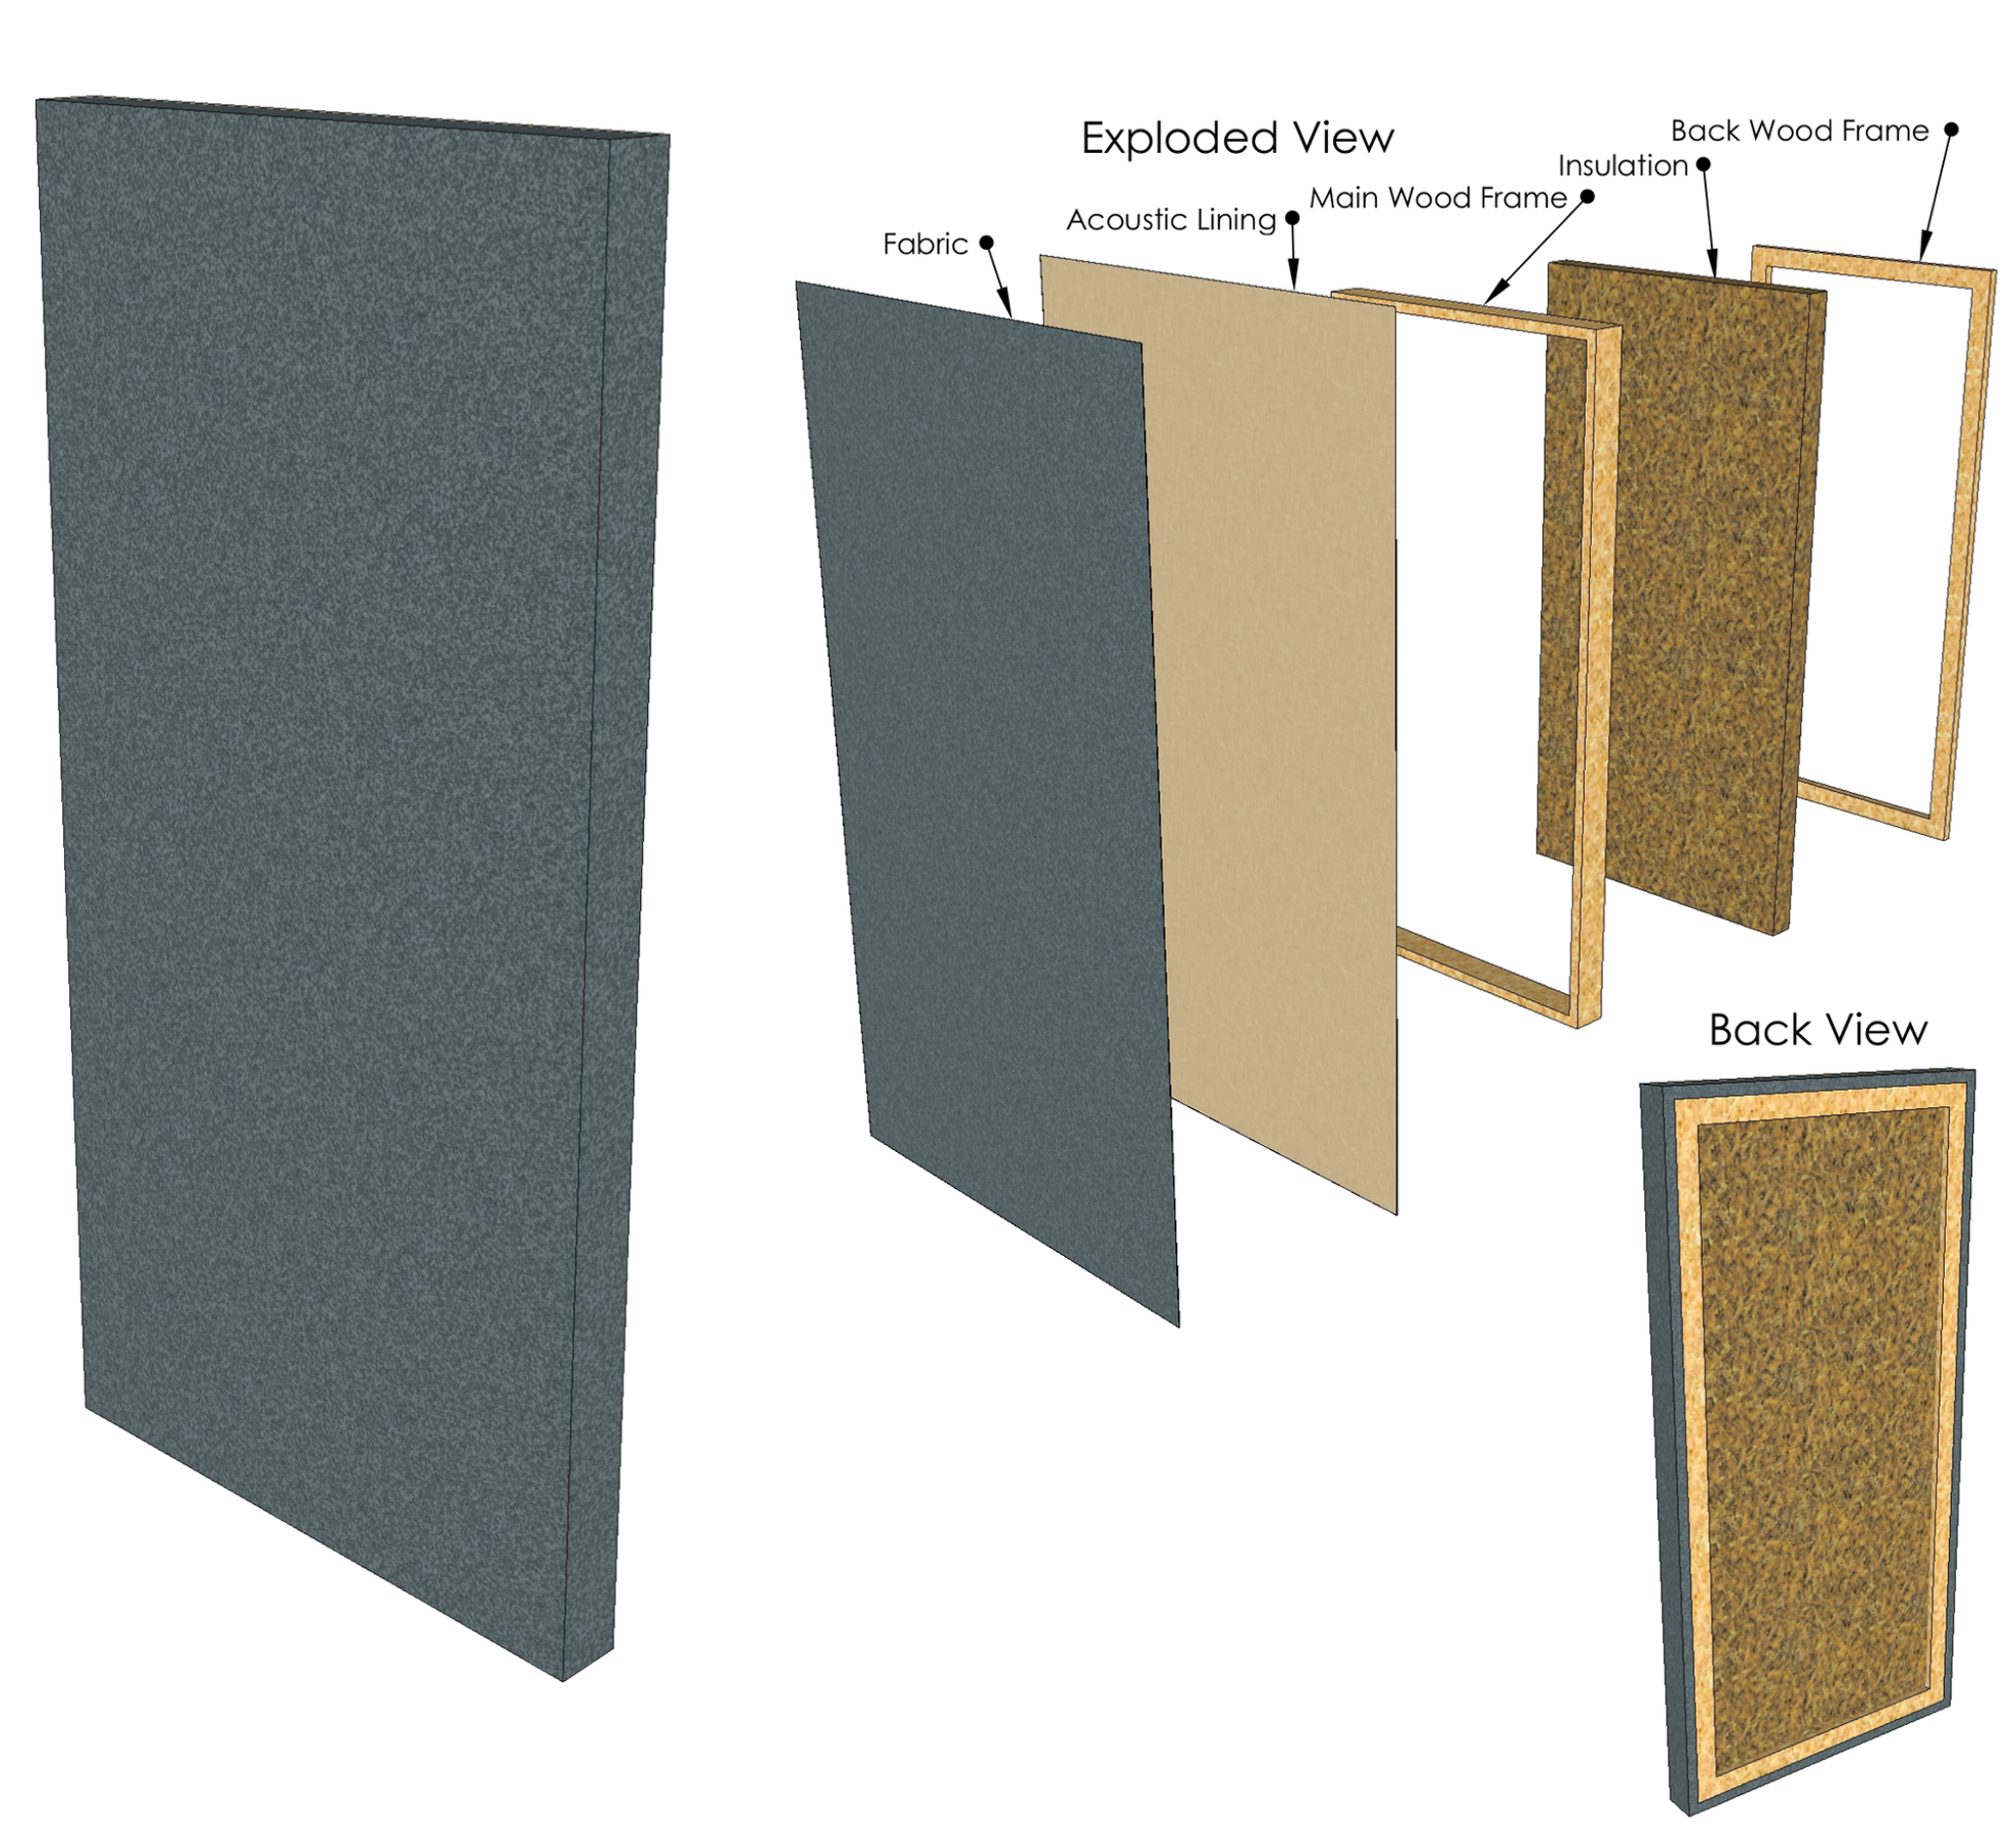 24 x 48 x 2 Acoustic Panel Product Sheet